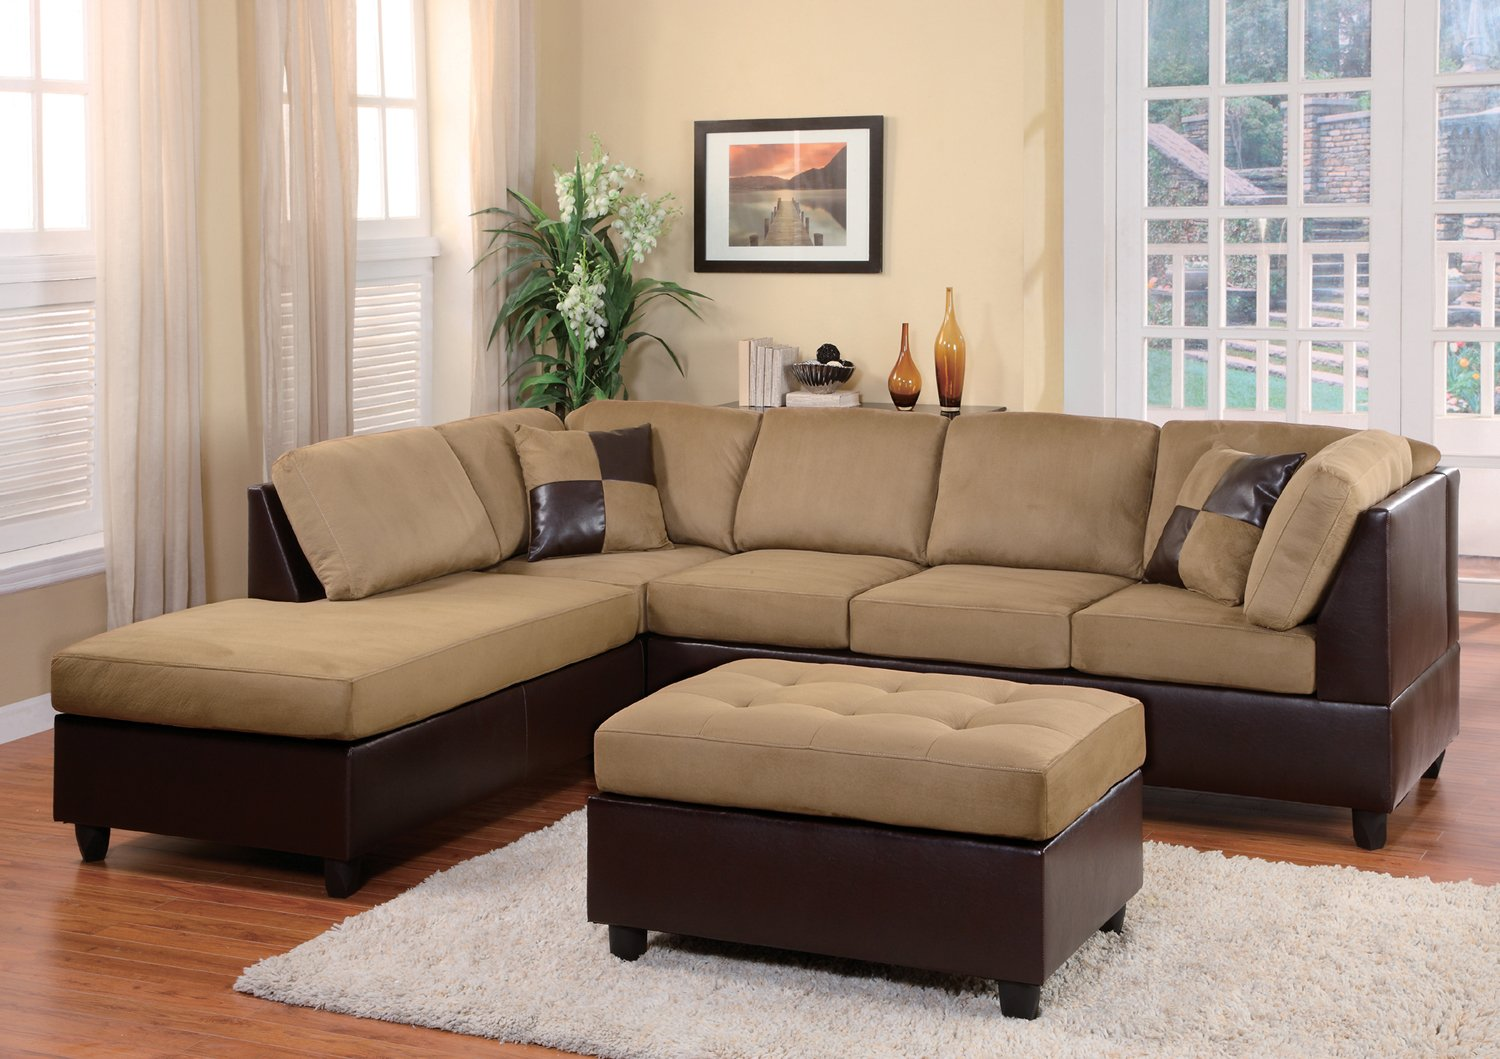 Homelegance 9909BR Comfort Living Sectional Collection with 2 Pillows, Brown Rhino Microfiber and Dark Brown Faux Leather by Homelegance